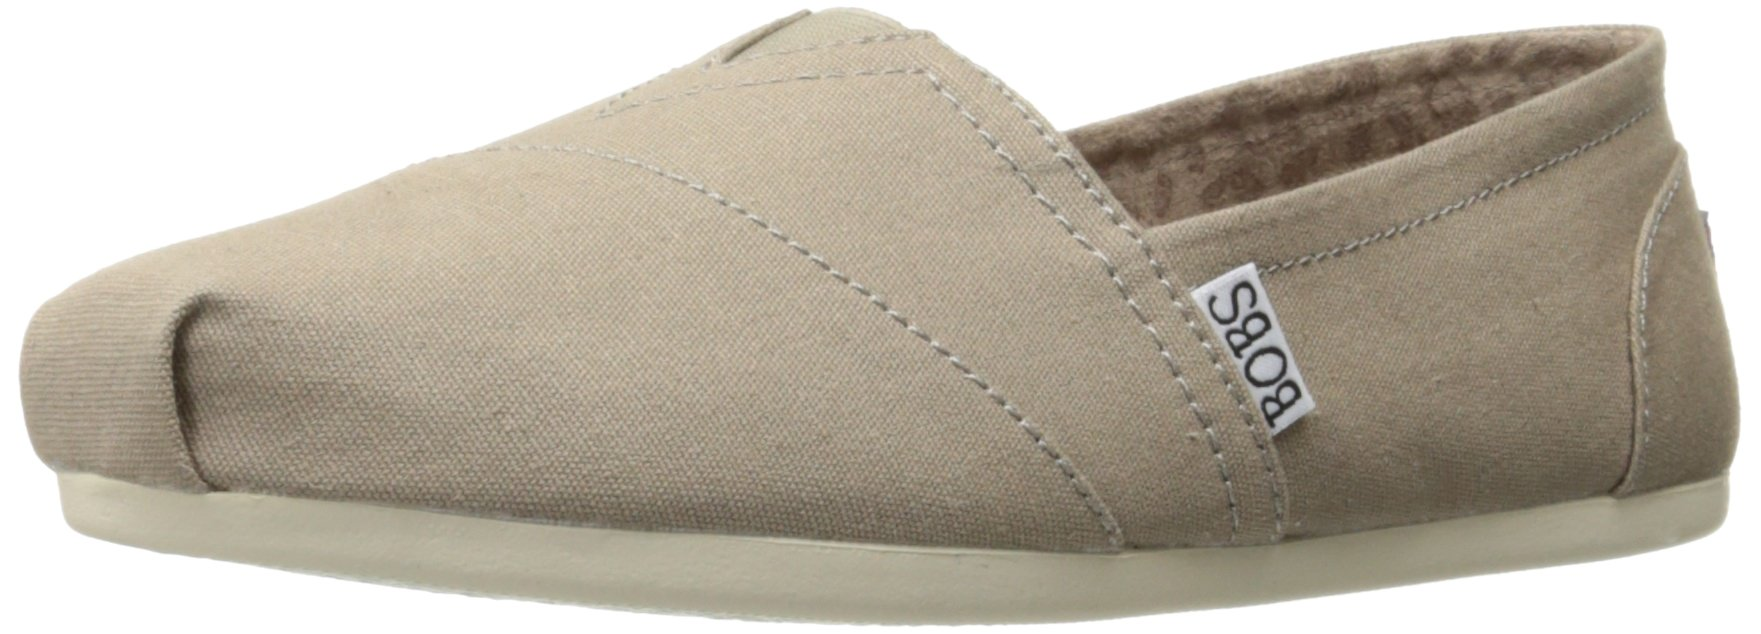 Skechers BOBS Women's Plush-Peace and Love Flat, Taupe, 8.5 W US by Skechers (Image #1)